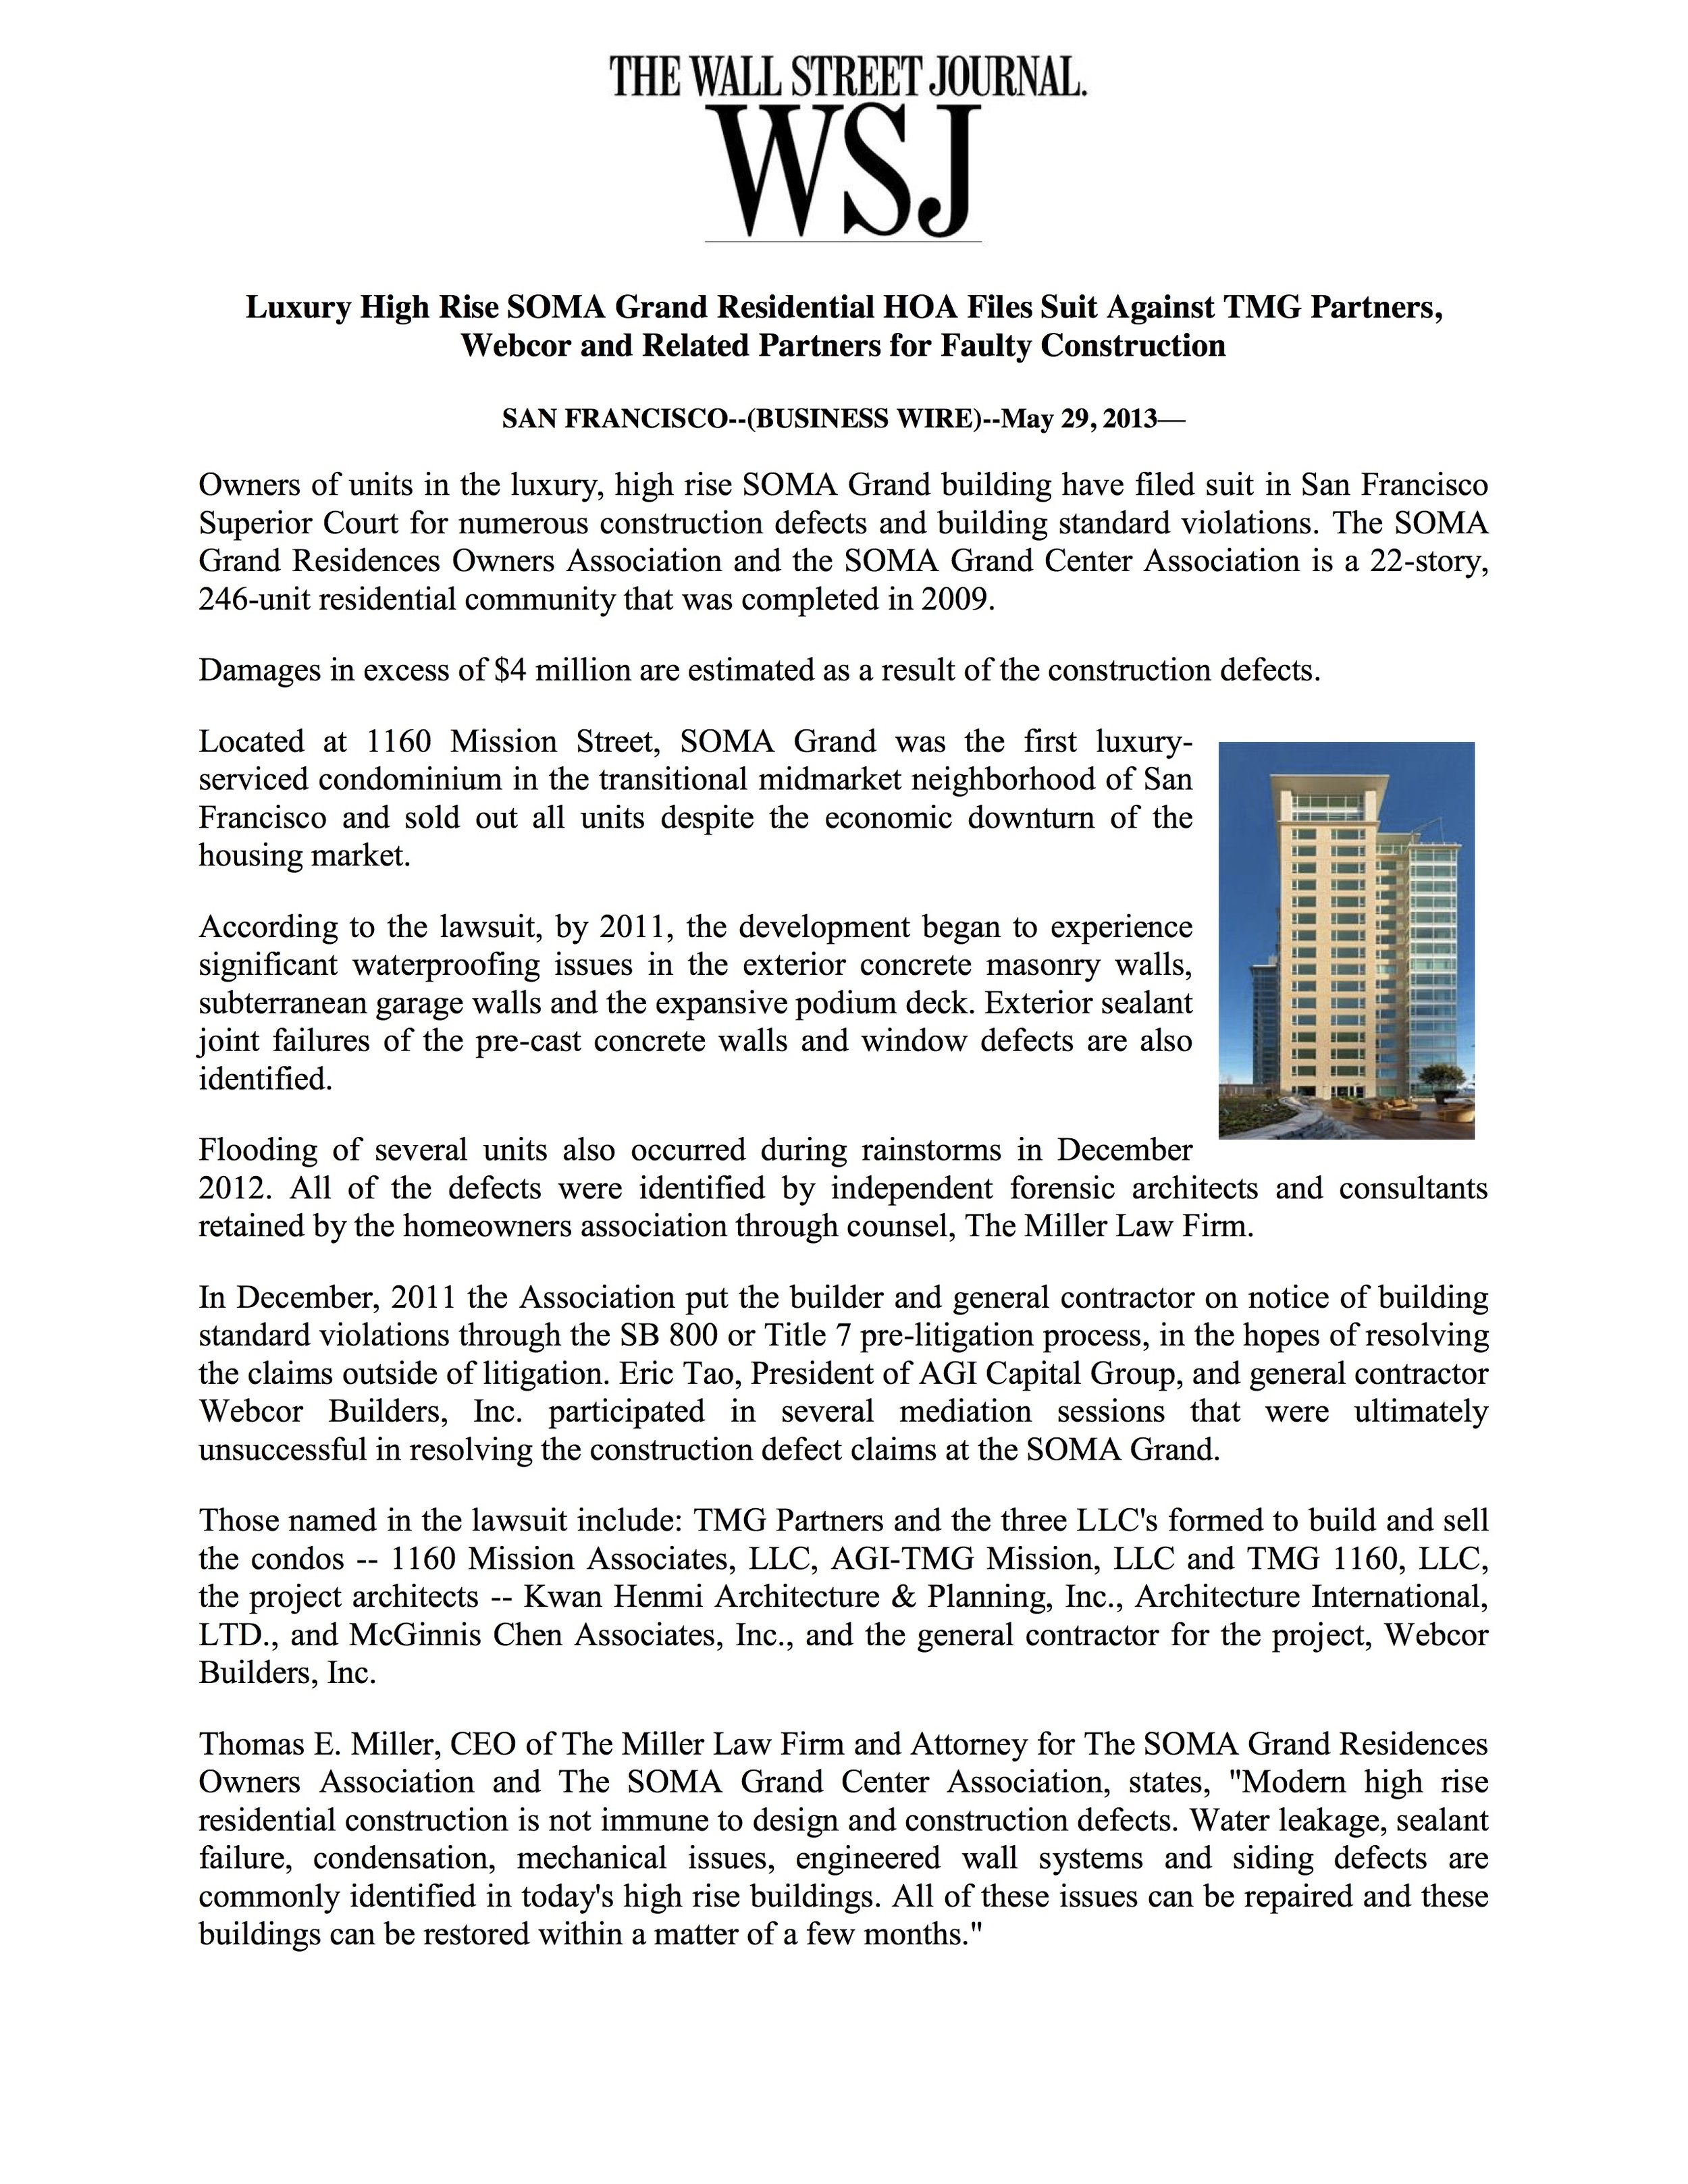 The Wall Street Journal - Luxury High Rise SOMA Grand Residential HOA Files Suit Against TMG Partners, Webcor and Related Partners for Faulty Construction